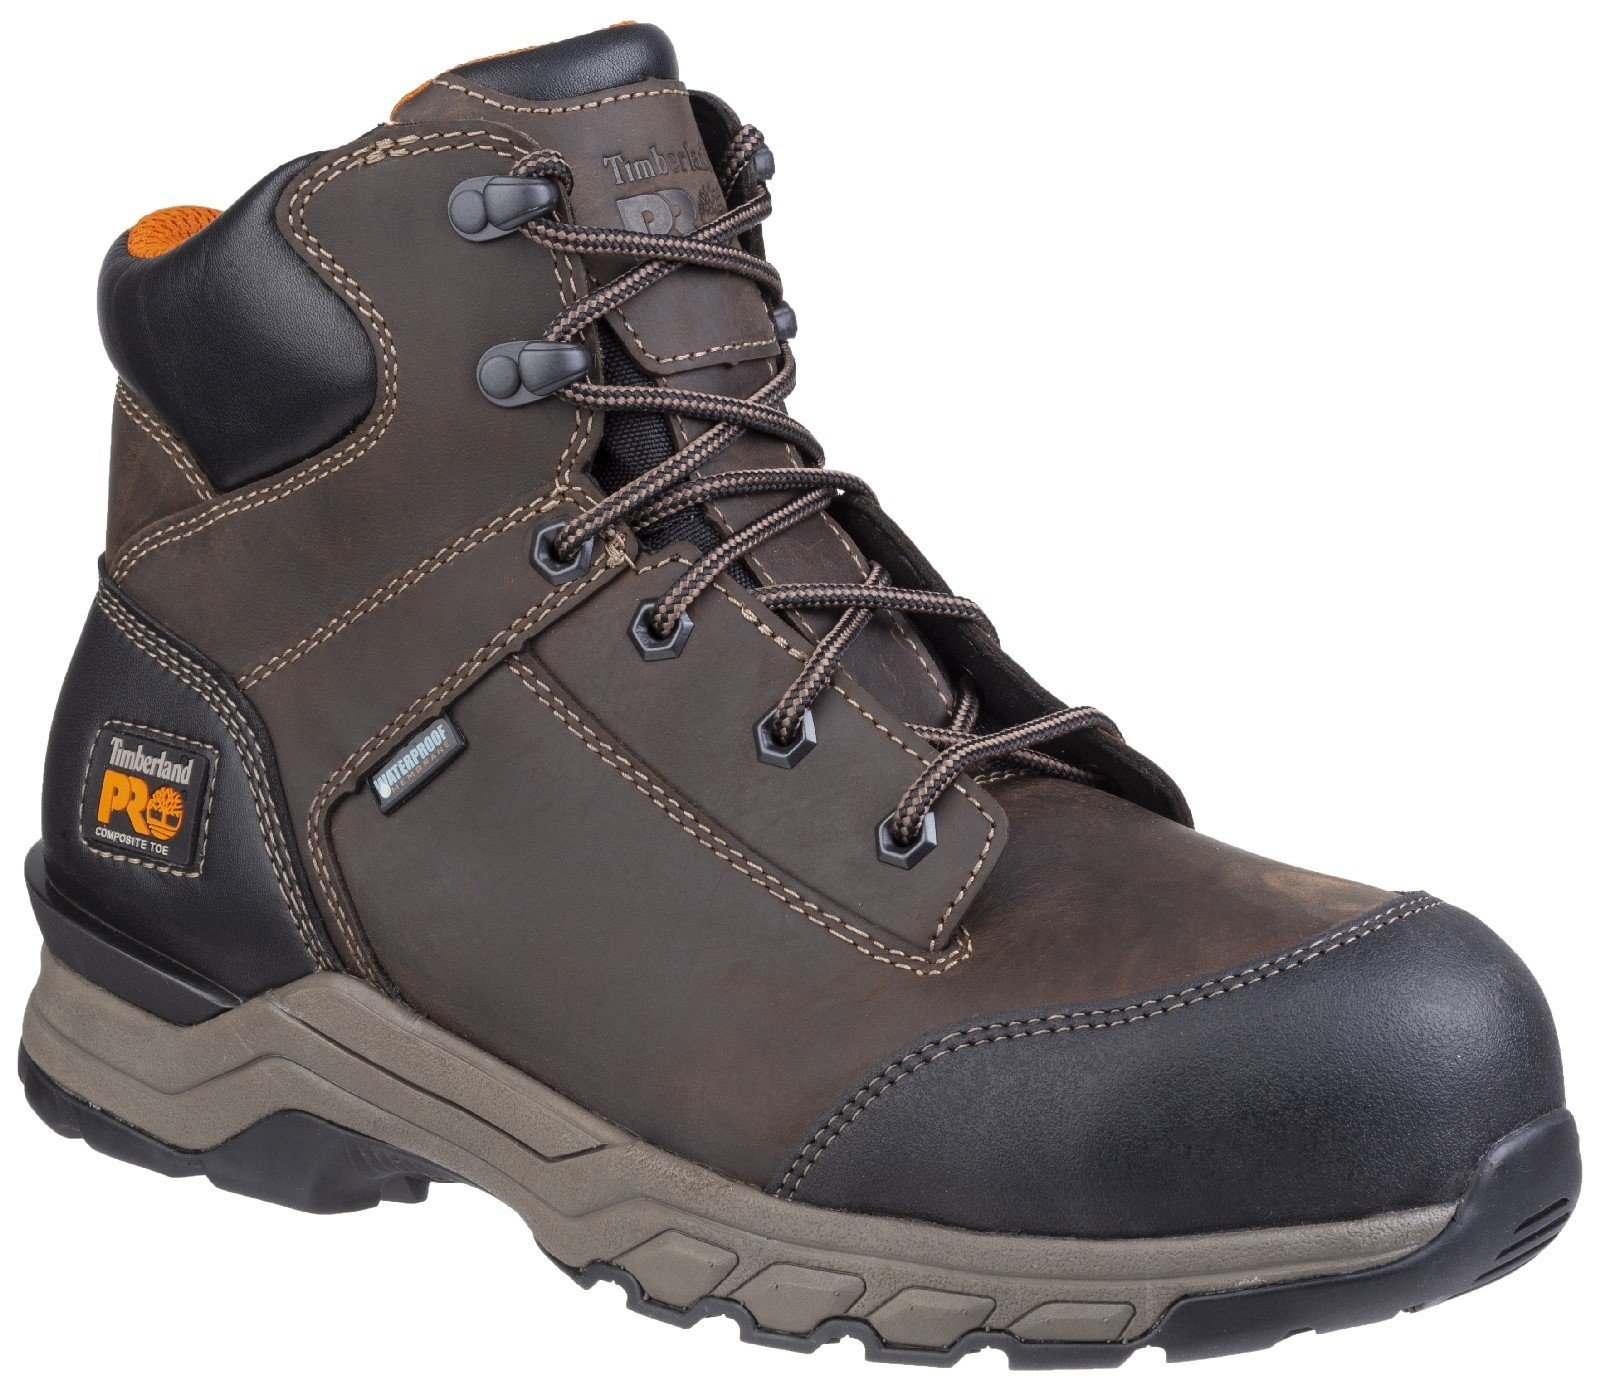 Timberland Pro Men's Hypercharge Lace Up Safety Boot Various Colours 28168 - Brown 6